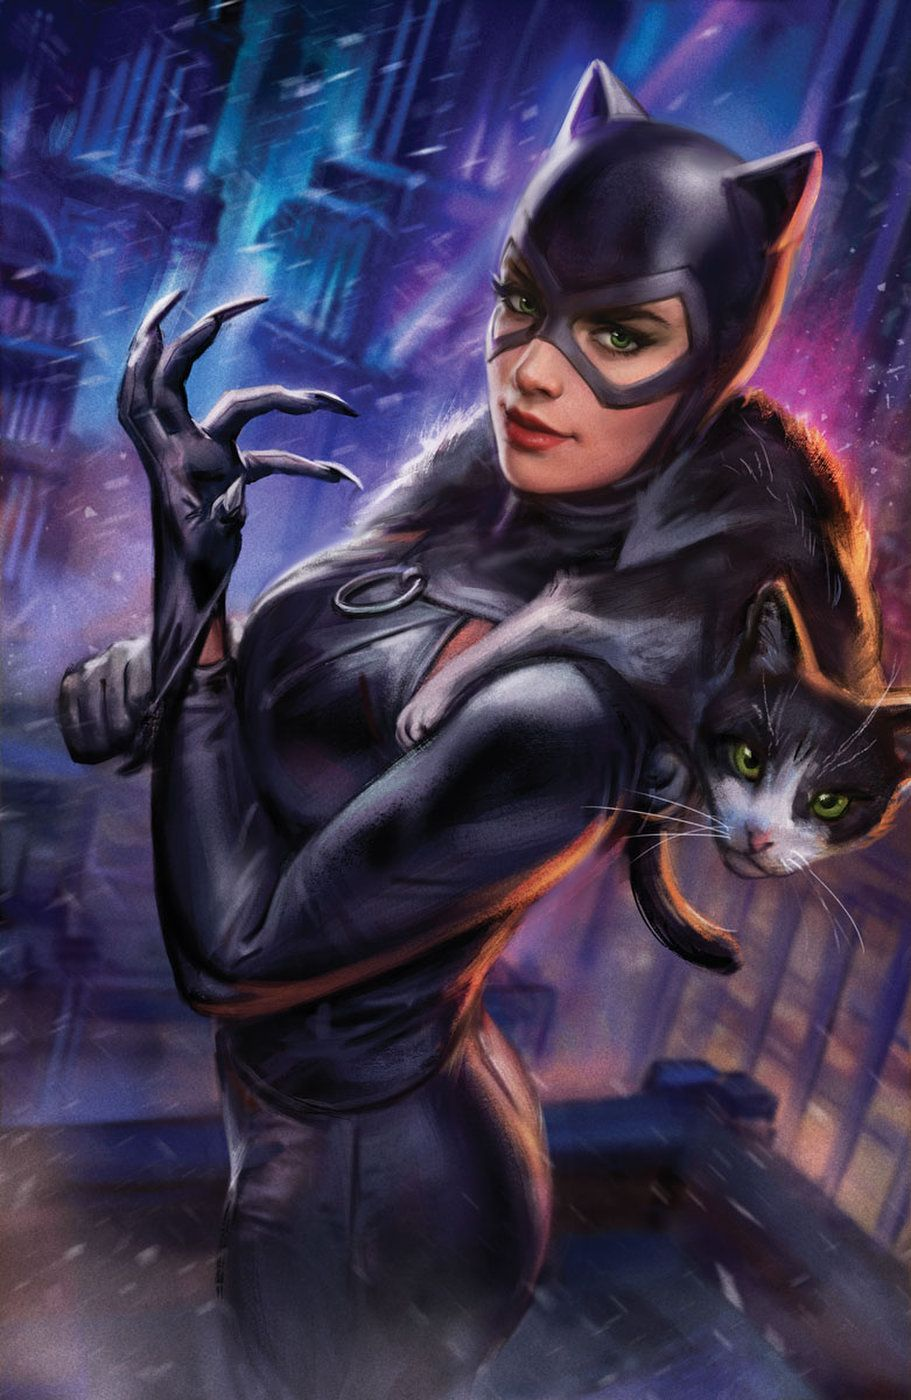 Catwoman by Iain MacDonald #comicbooks